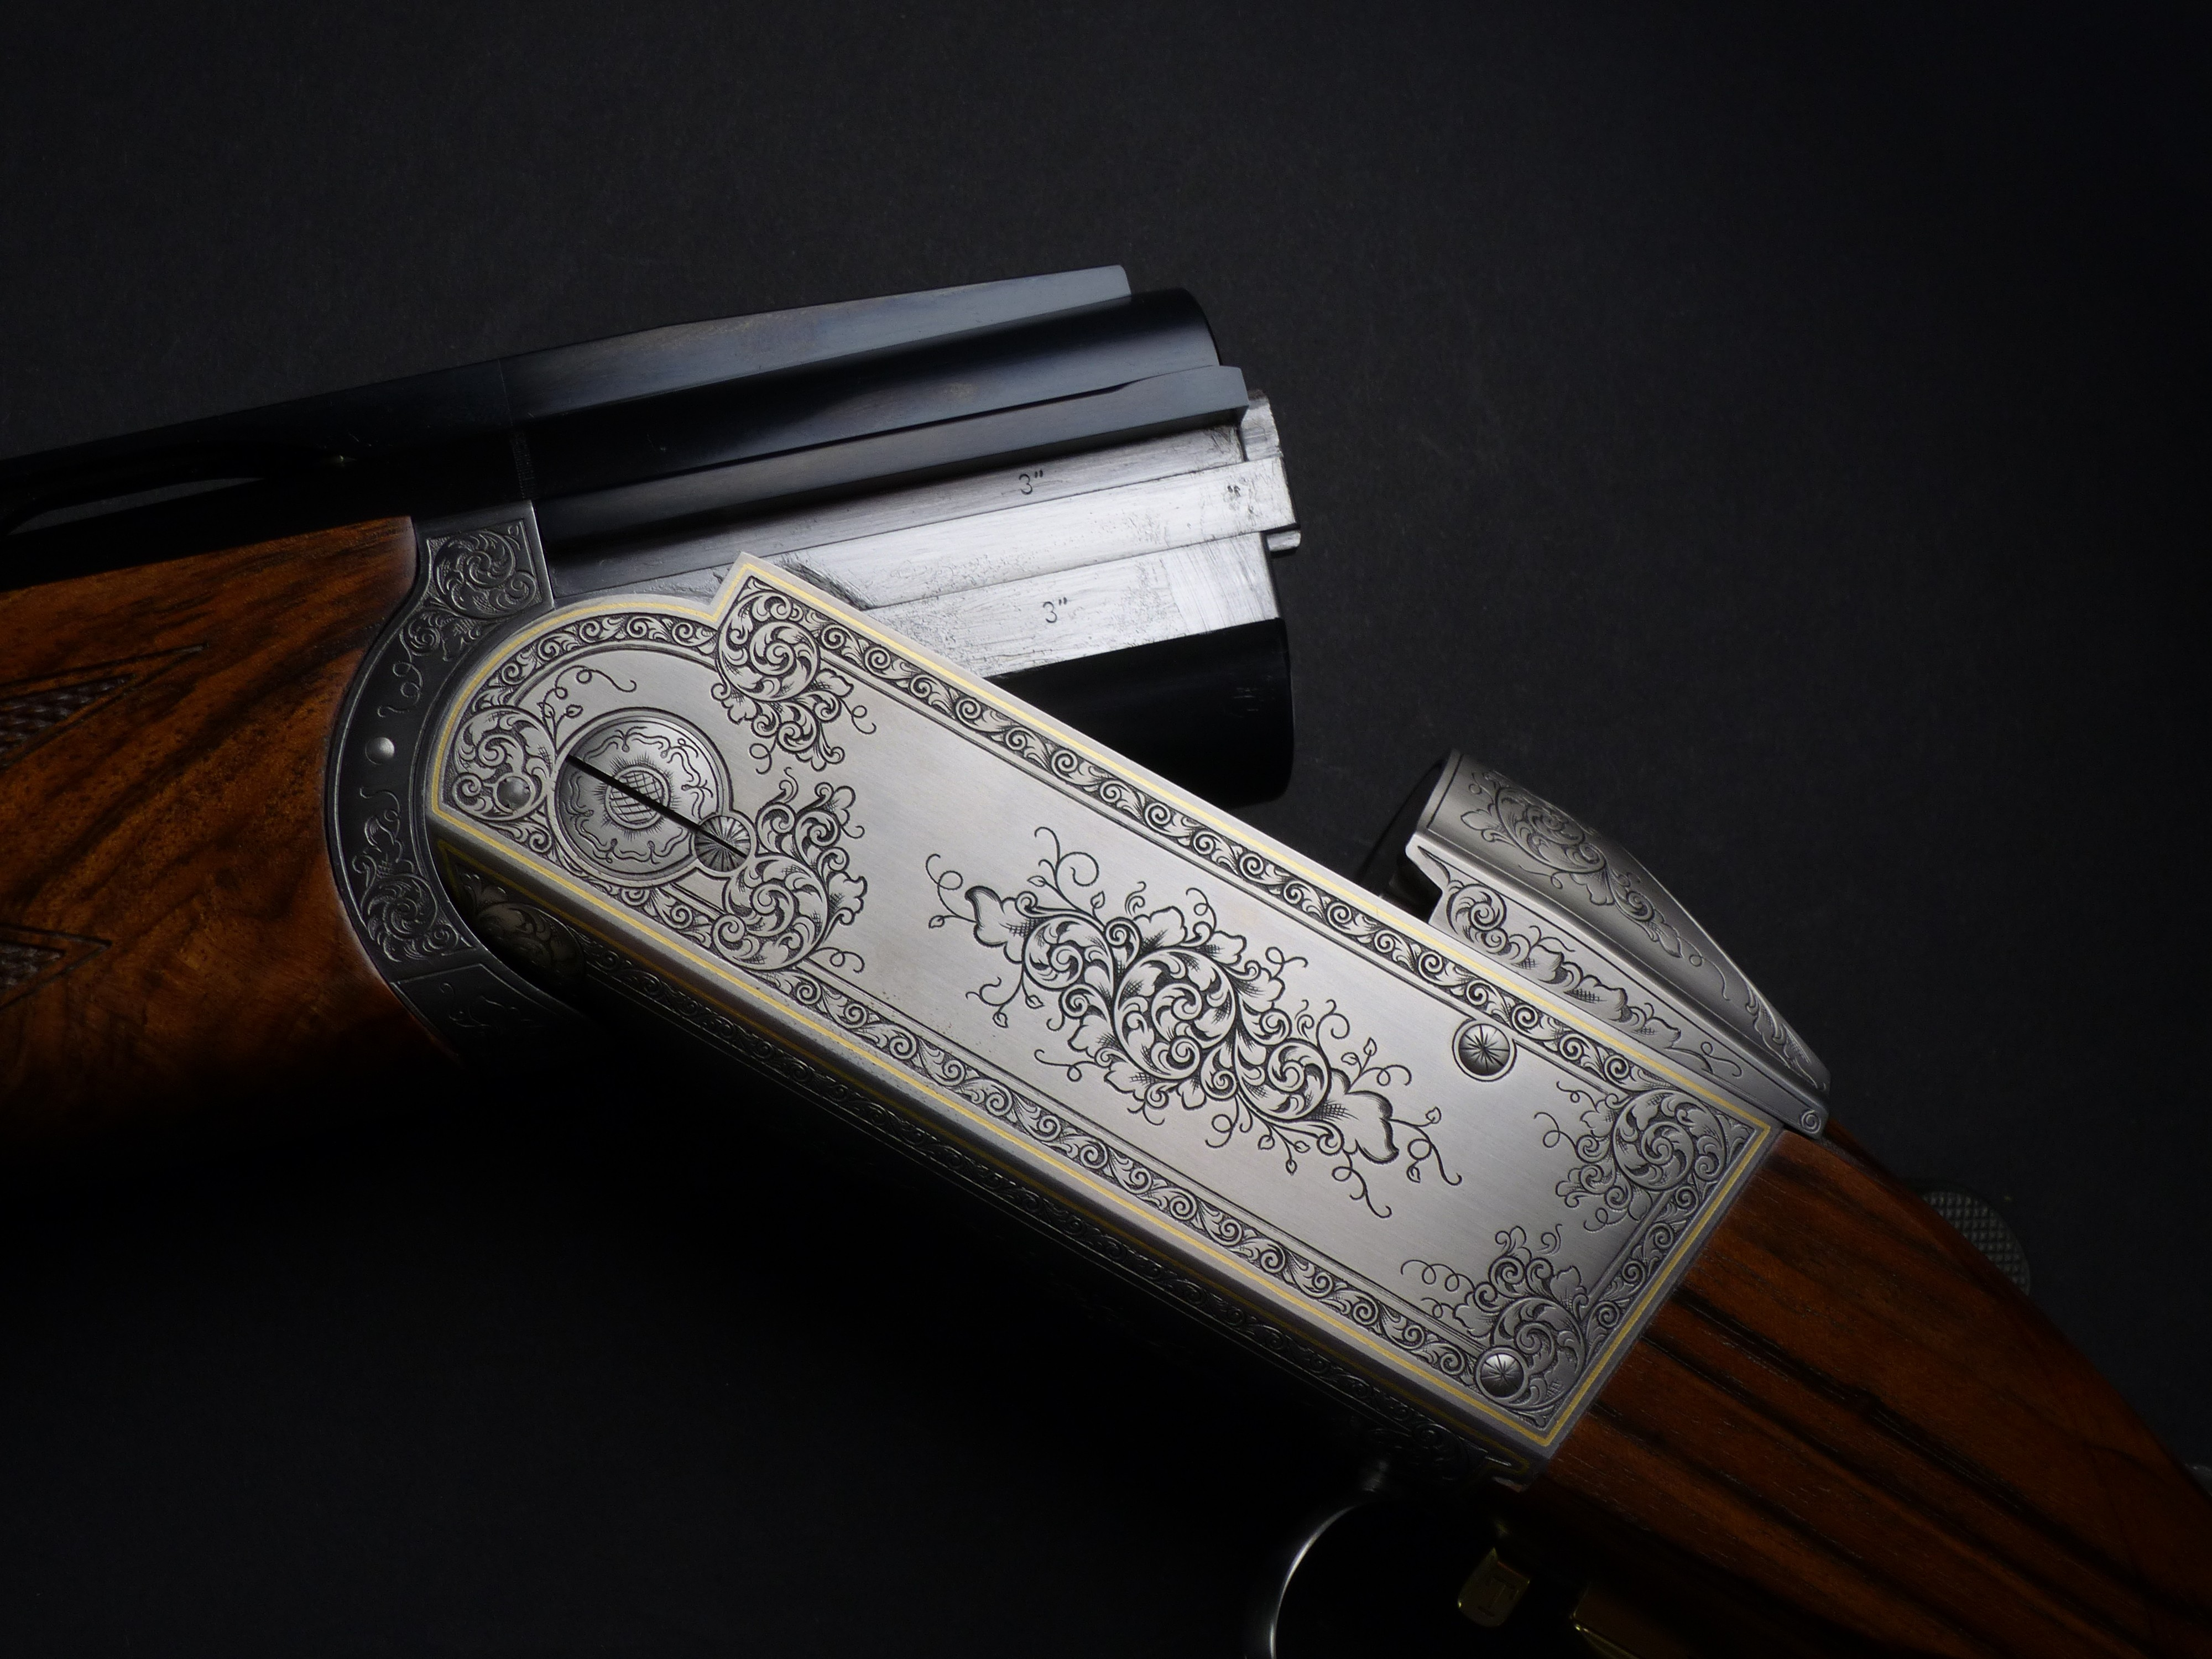 The Exceptional Krieghoff